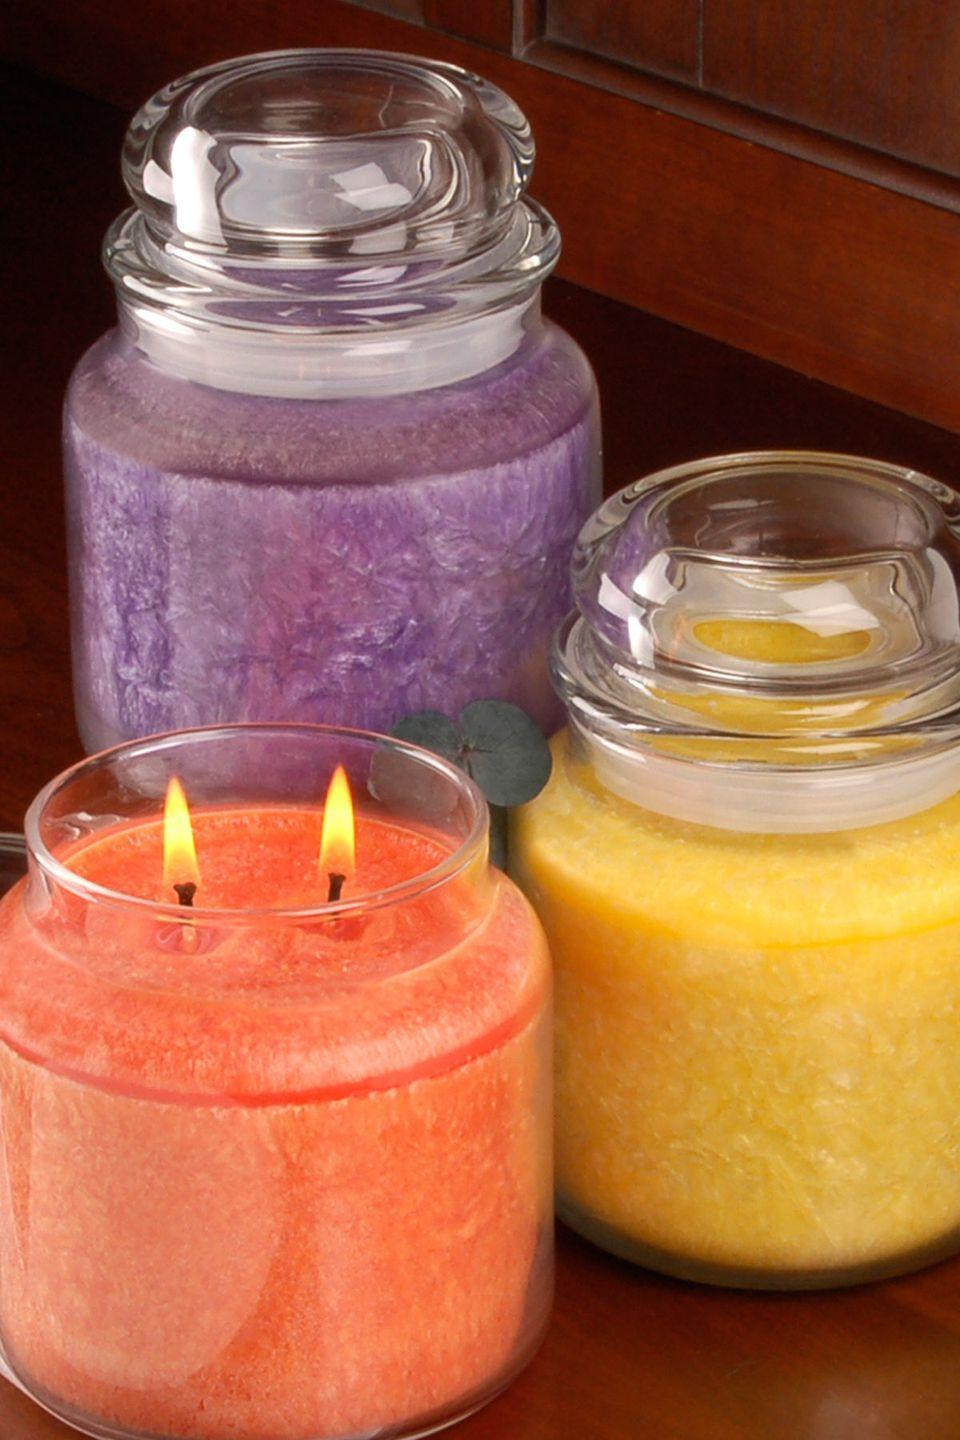 "<p>Donate or pass the candle you were gifted in a scent you can't stand to a friend who <em>does </em>love it if it's still new, or toss it if it looks like it was found in the Haunted Mansion.</p><p> <a class=""link rapid-noclick-resp"" href=""https://www.amazon.com/NEST-Fragrances-Luxury-Votive-Candle/dp/B01FRKPB2Y/ref=sr_1_7?tag=syn-yahoo-20&ascsubtag=%5Bartid%7C10070.g.30809532%5Bsrc%7Cyahoo-us"" rel=""nofollow noopener"" target=""_blank"" data-ylk=""slk:SHOP NEW CANDLES"">SHOP NEW CANDLES</a></p>"